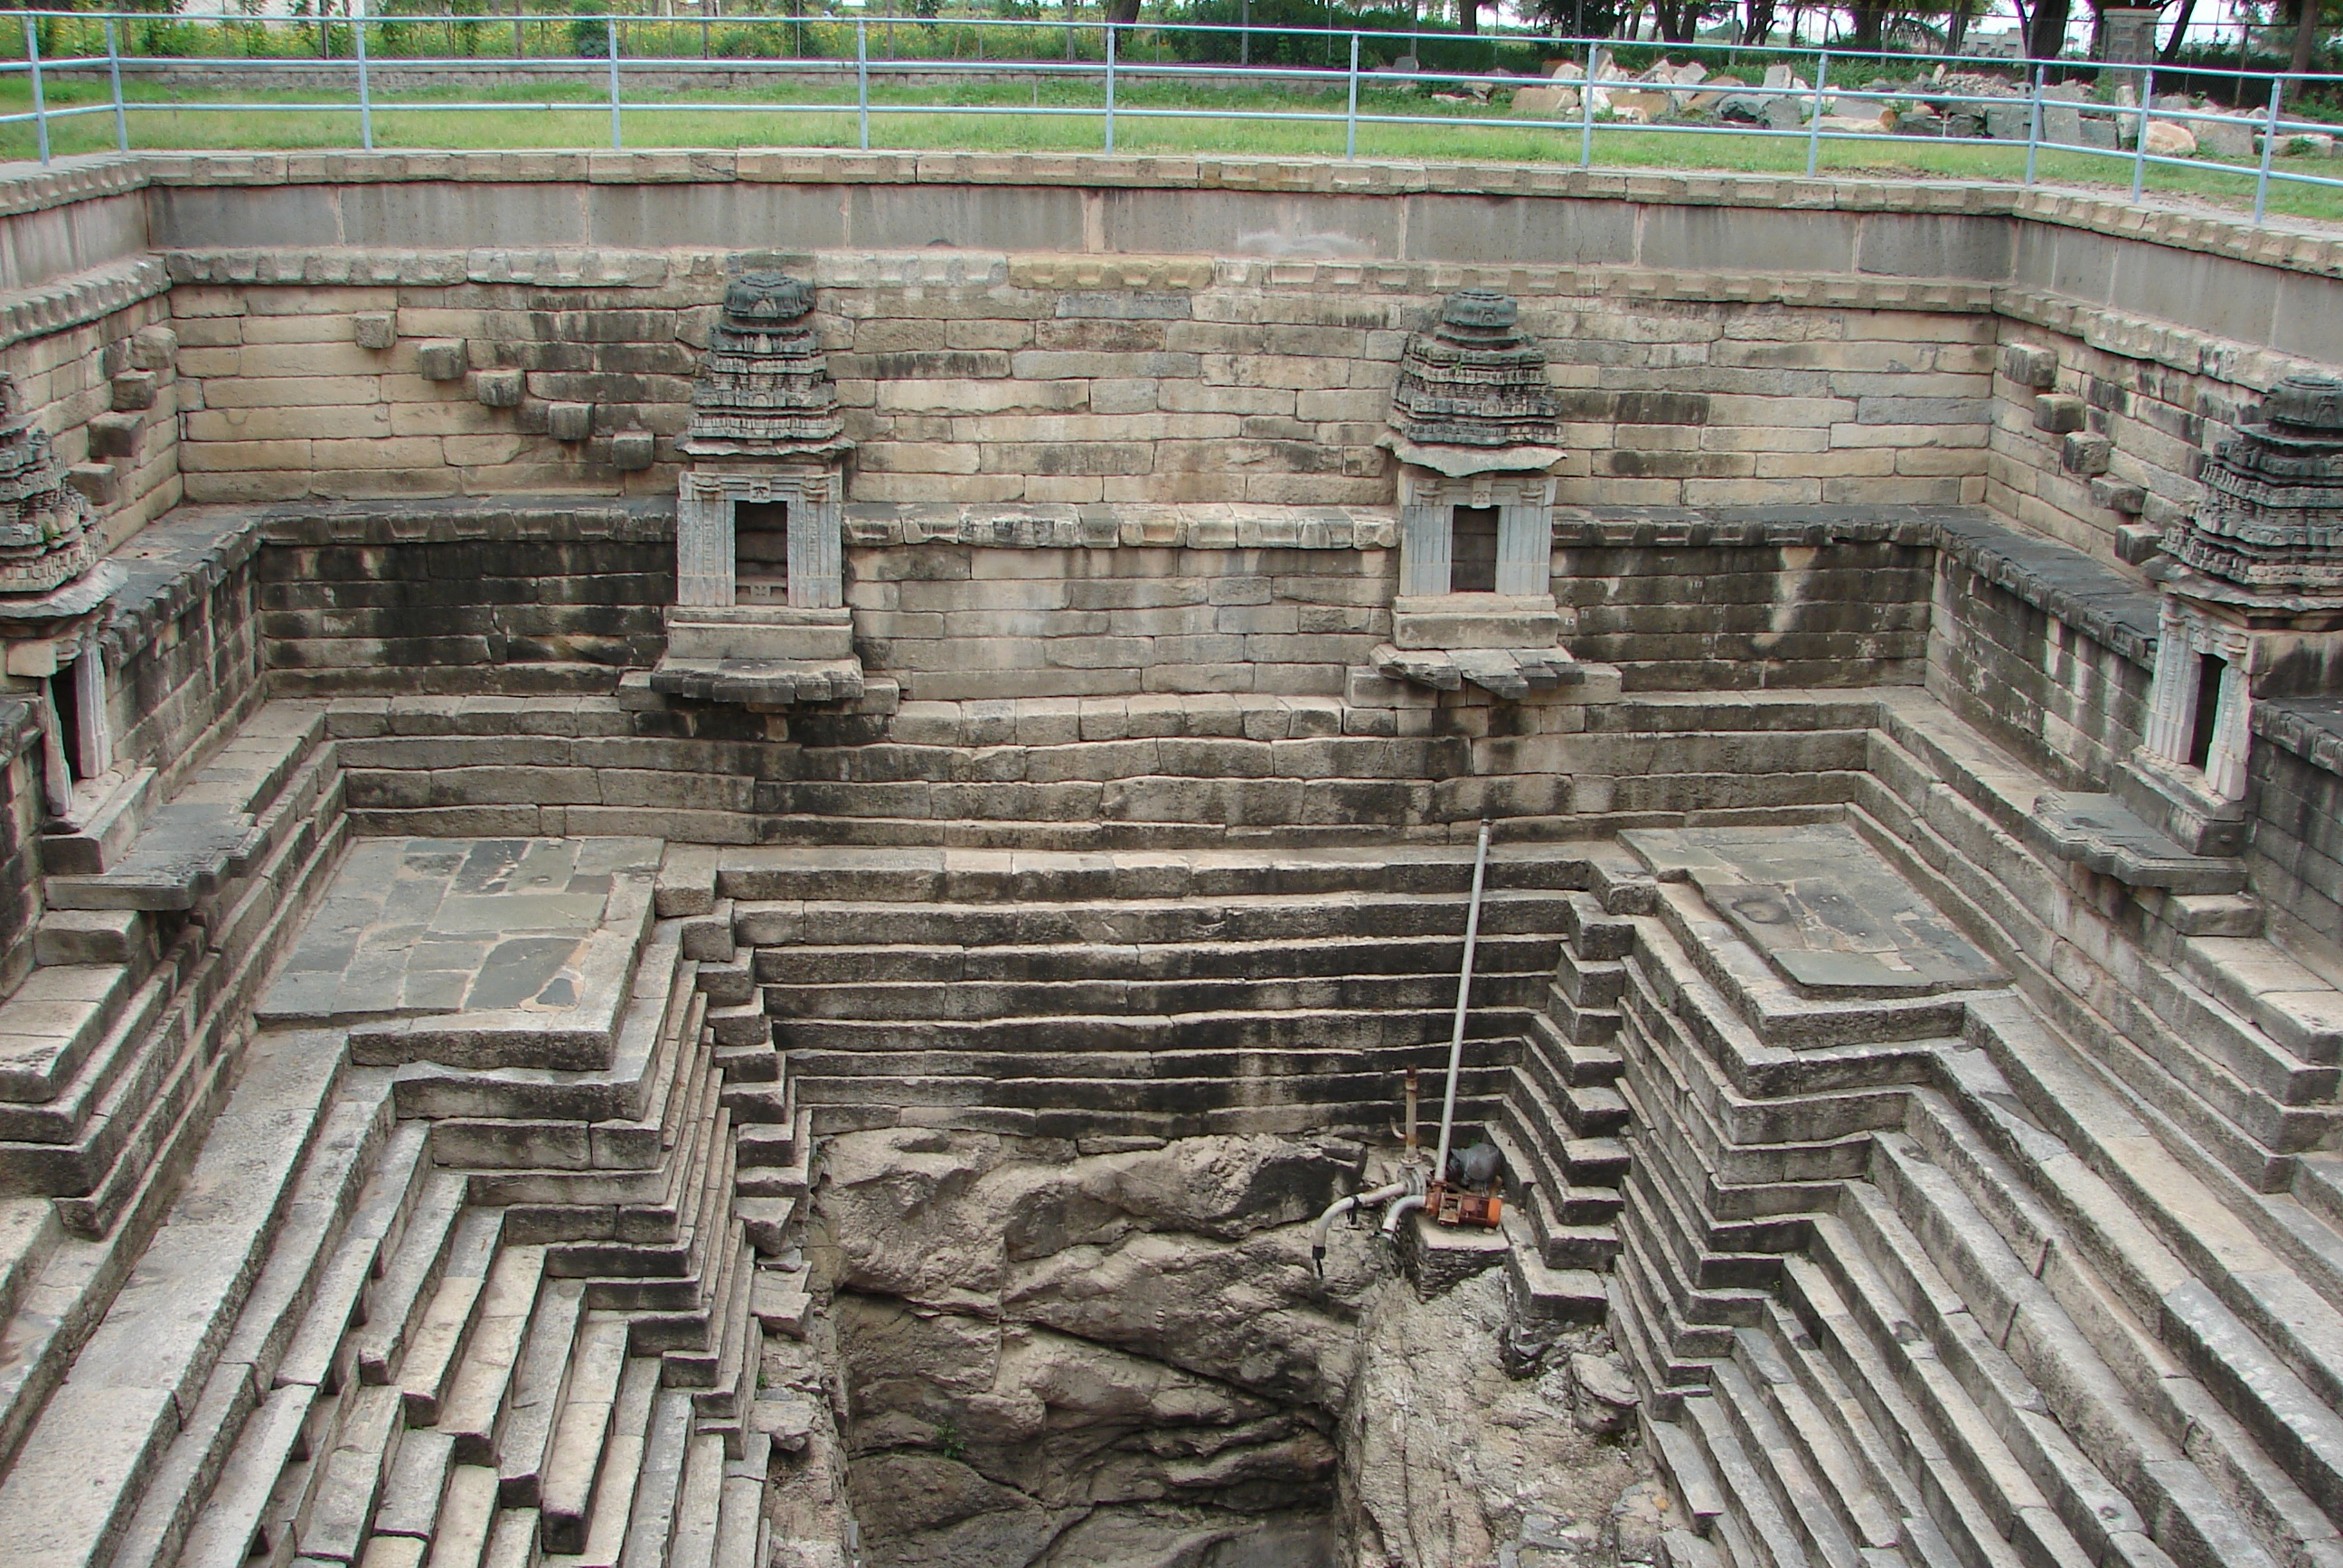 Gadag India  city photos gallery : The WritersHive: Gadag Witness Exquisite Architecture Steeped In ...